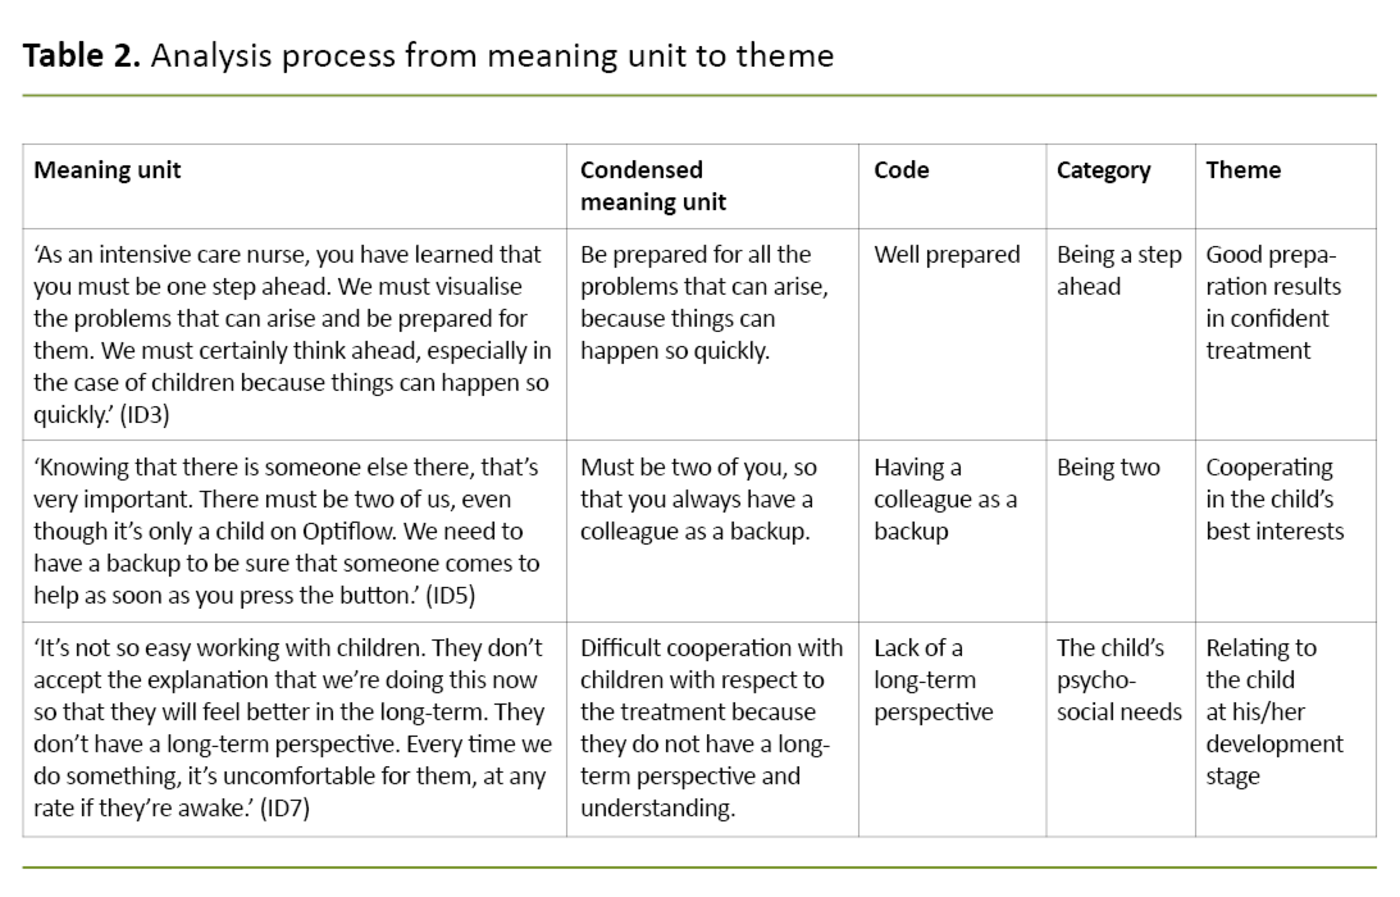 Table 2. Analysis process from meaning unit to theme